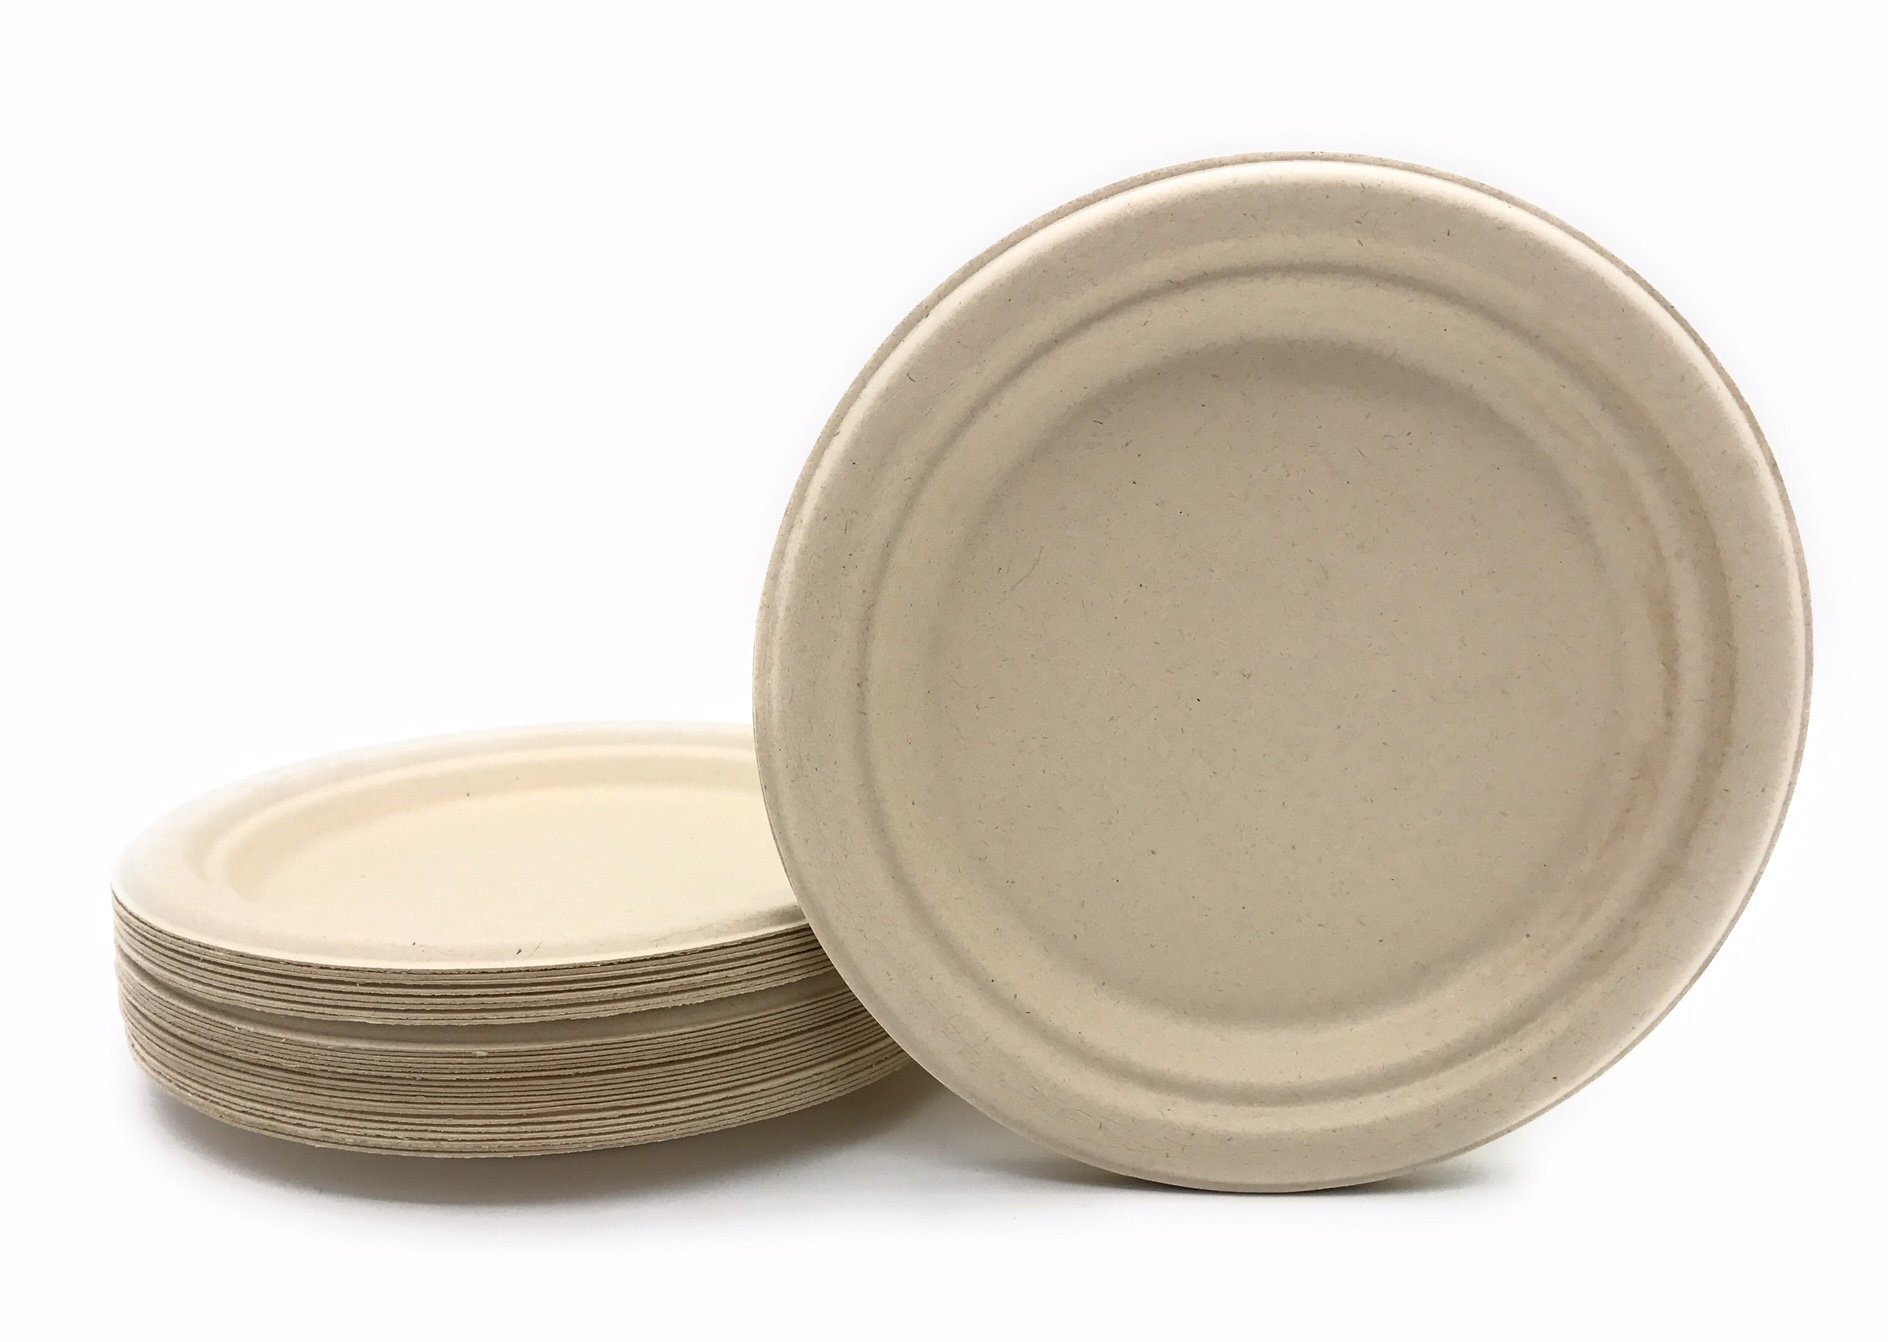 [125 COUNT] 7'' in Round Disposable Plates - Natural Sugarcane Bagasse Bamboo Fibers Sturdy Seven Inch Compostable Eco Friendly Environmental Paper Plate Alternative 100% by-product Tree Plastic Free by Harvest Pack (Image #3)